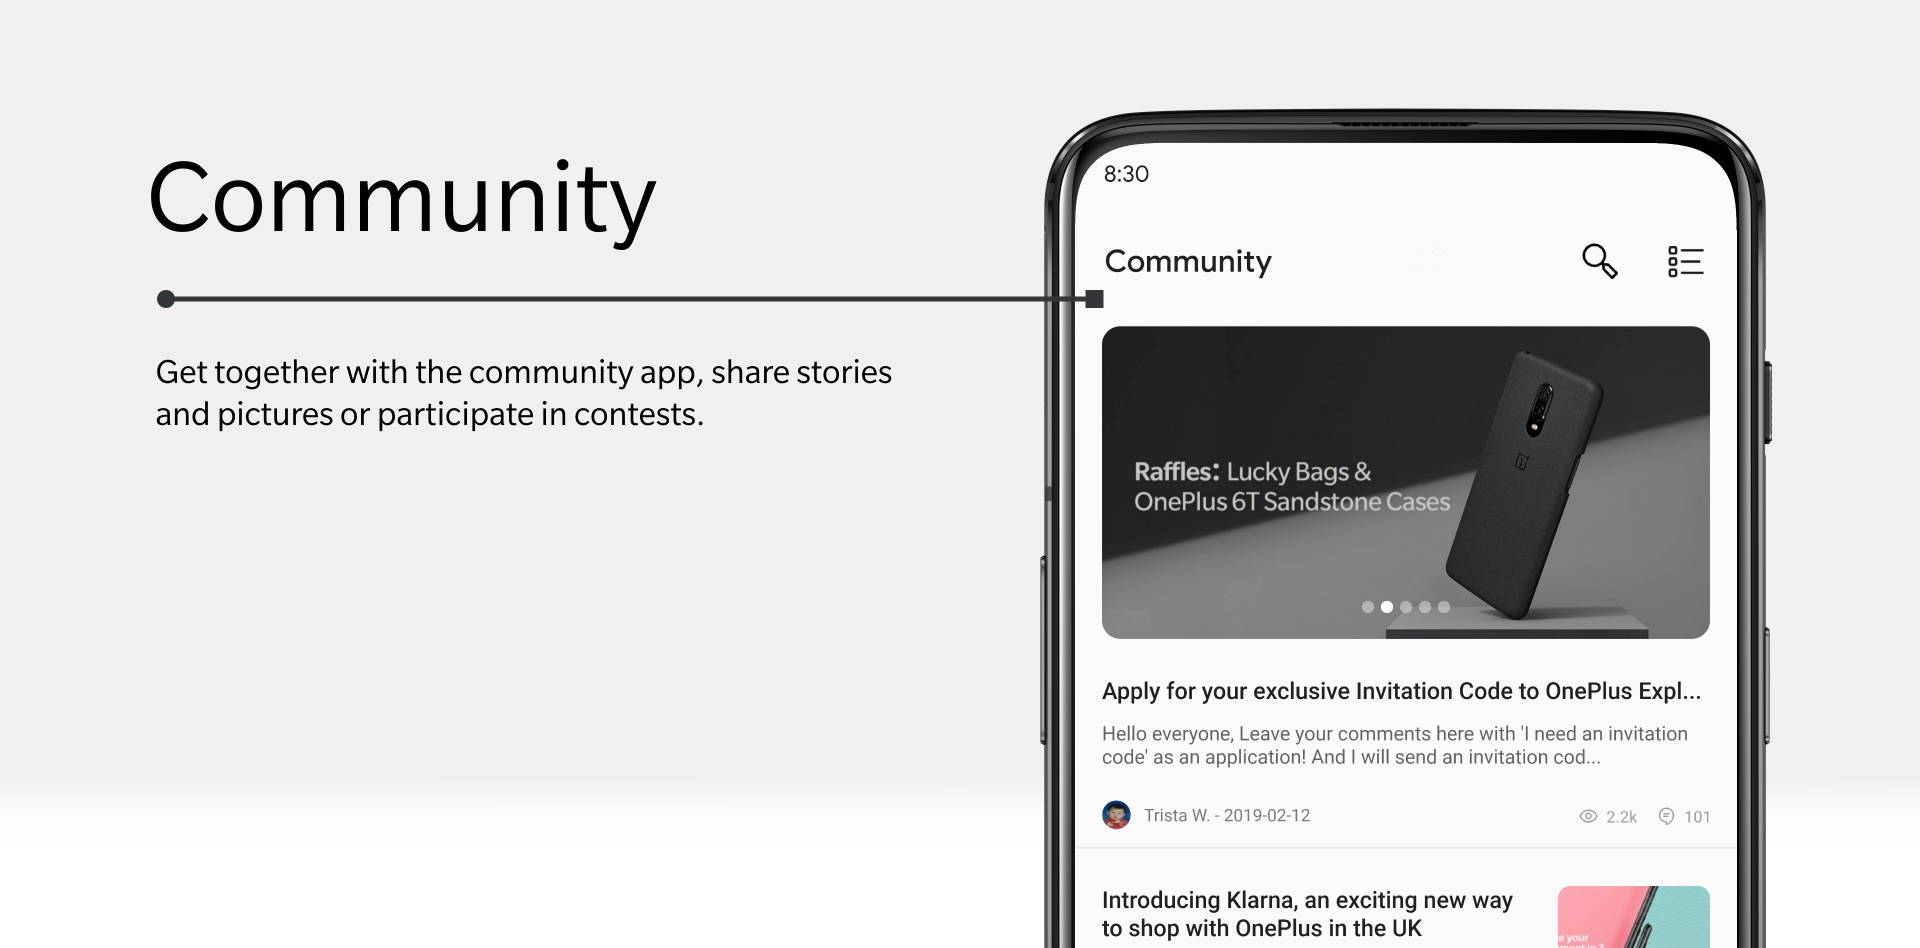 PMChallenge - Reworked OxygenOS Experience | Page 2 - OnePlus Community